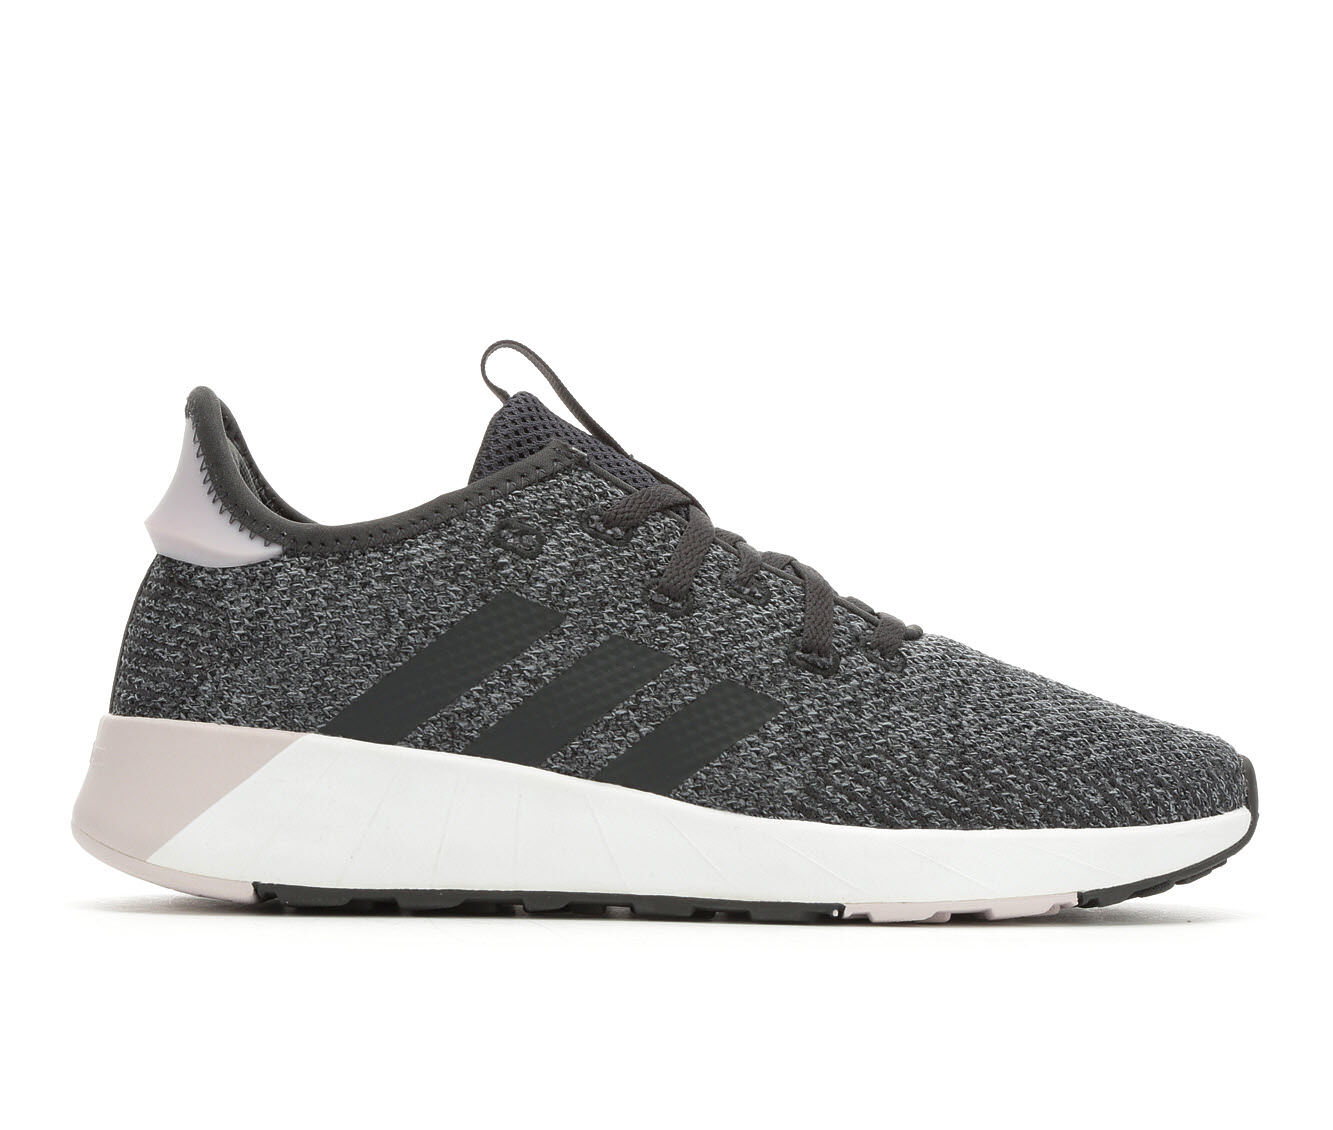 Women's Adidas Questar X Sneakers Blk/Carbon/Ice